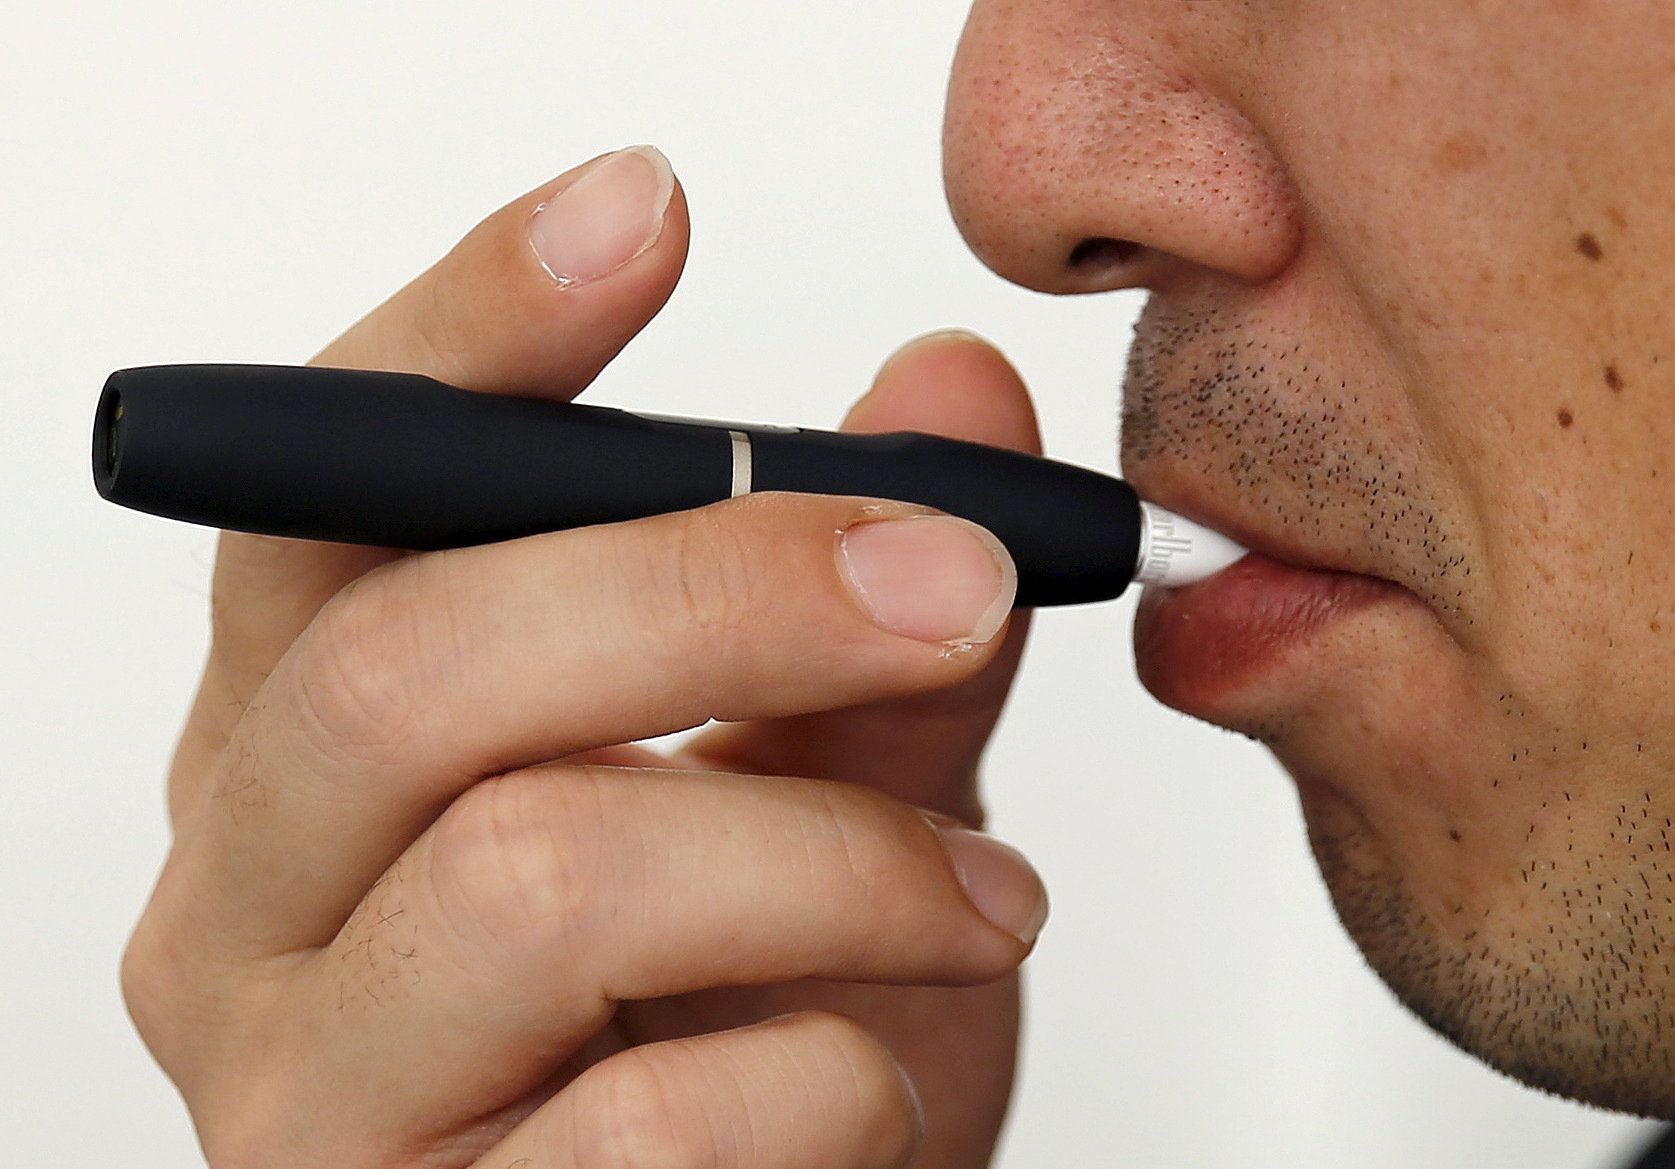 U S  Navy Bans E-Cigarettes After Multiple Sailors Suffer Serious